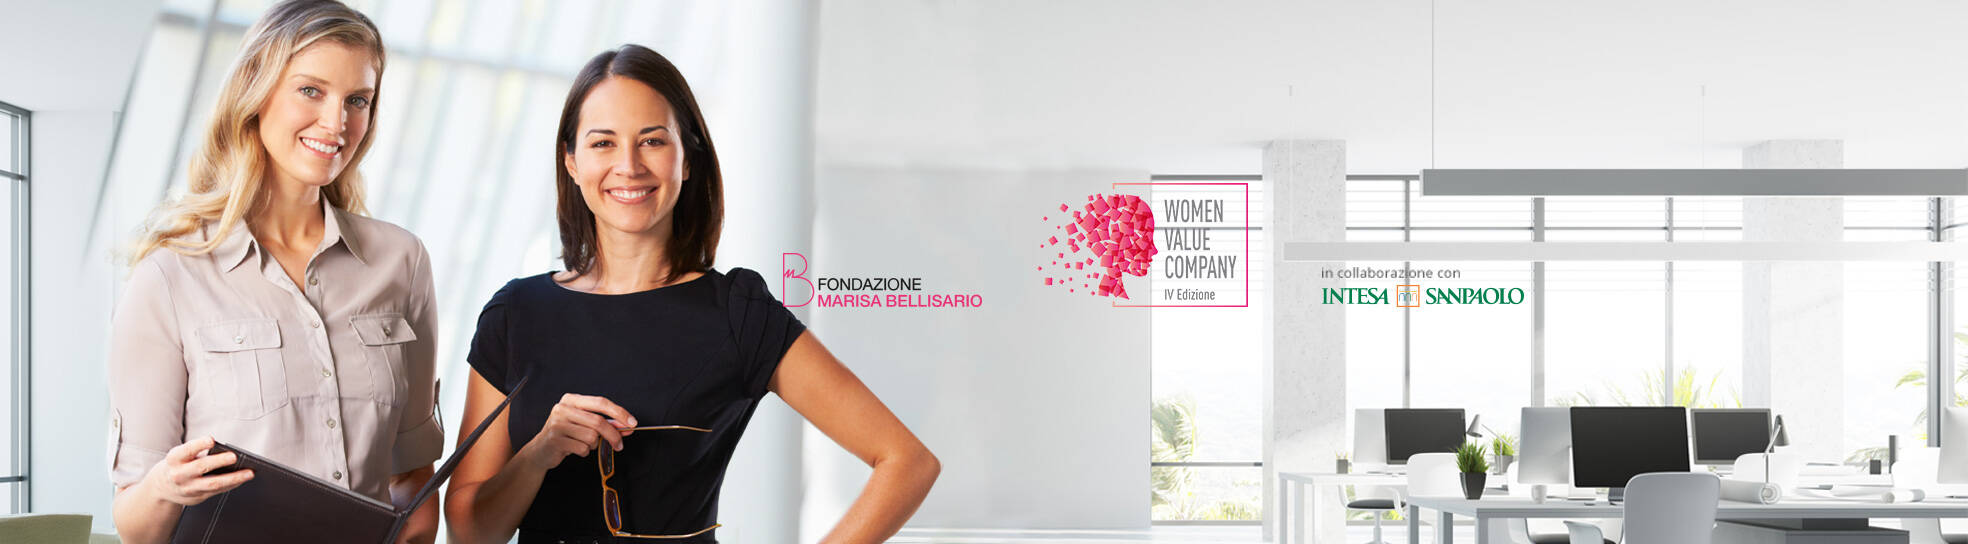 Women value company: Automha tra le prime 90 aziende